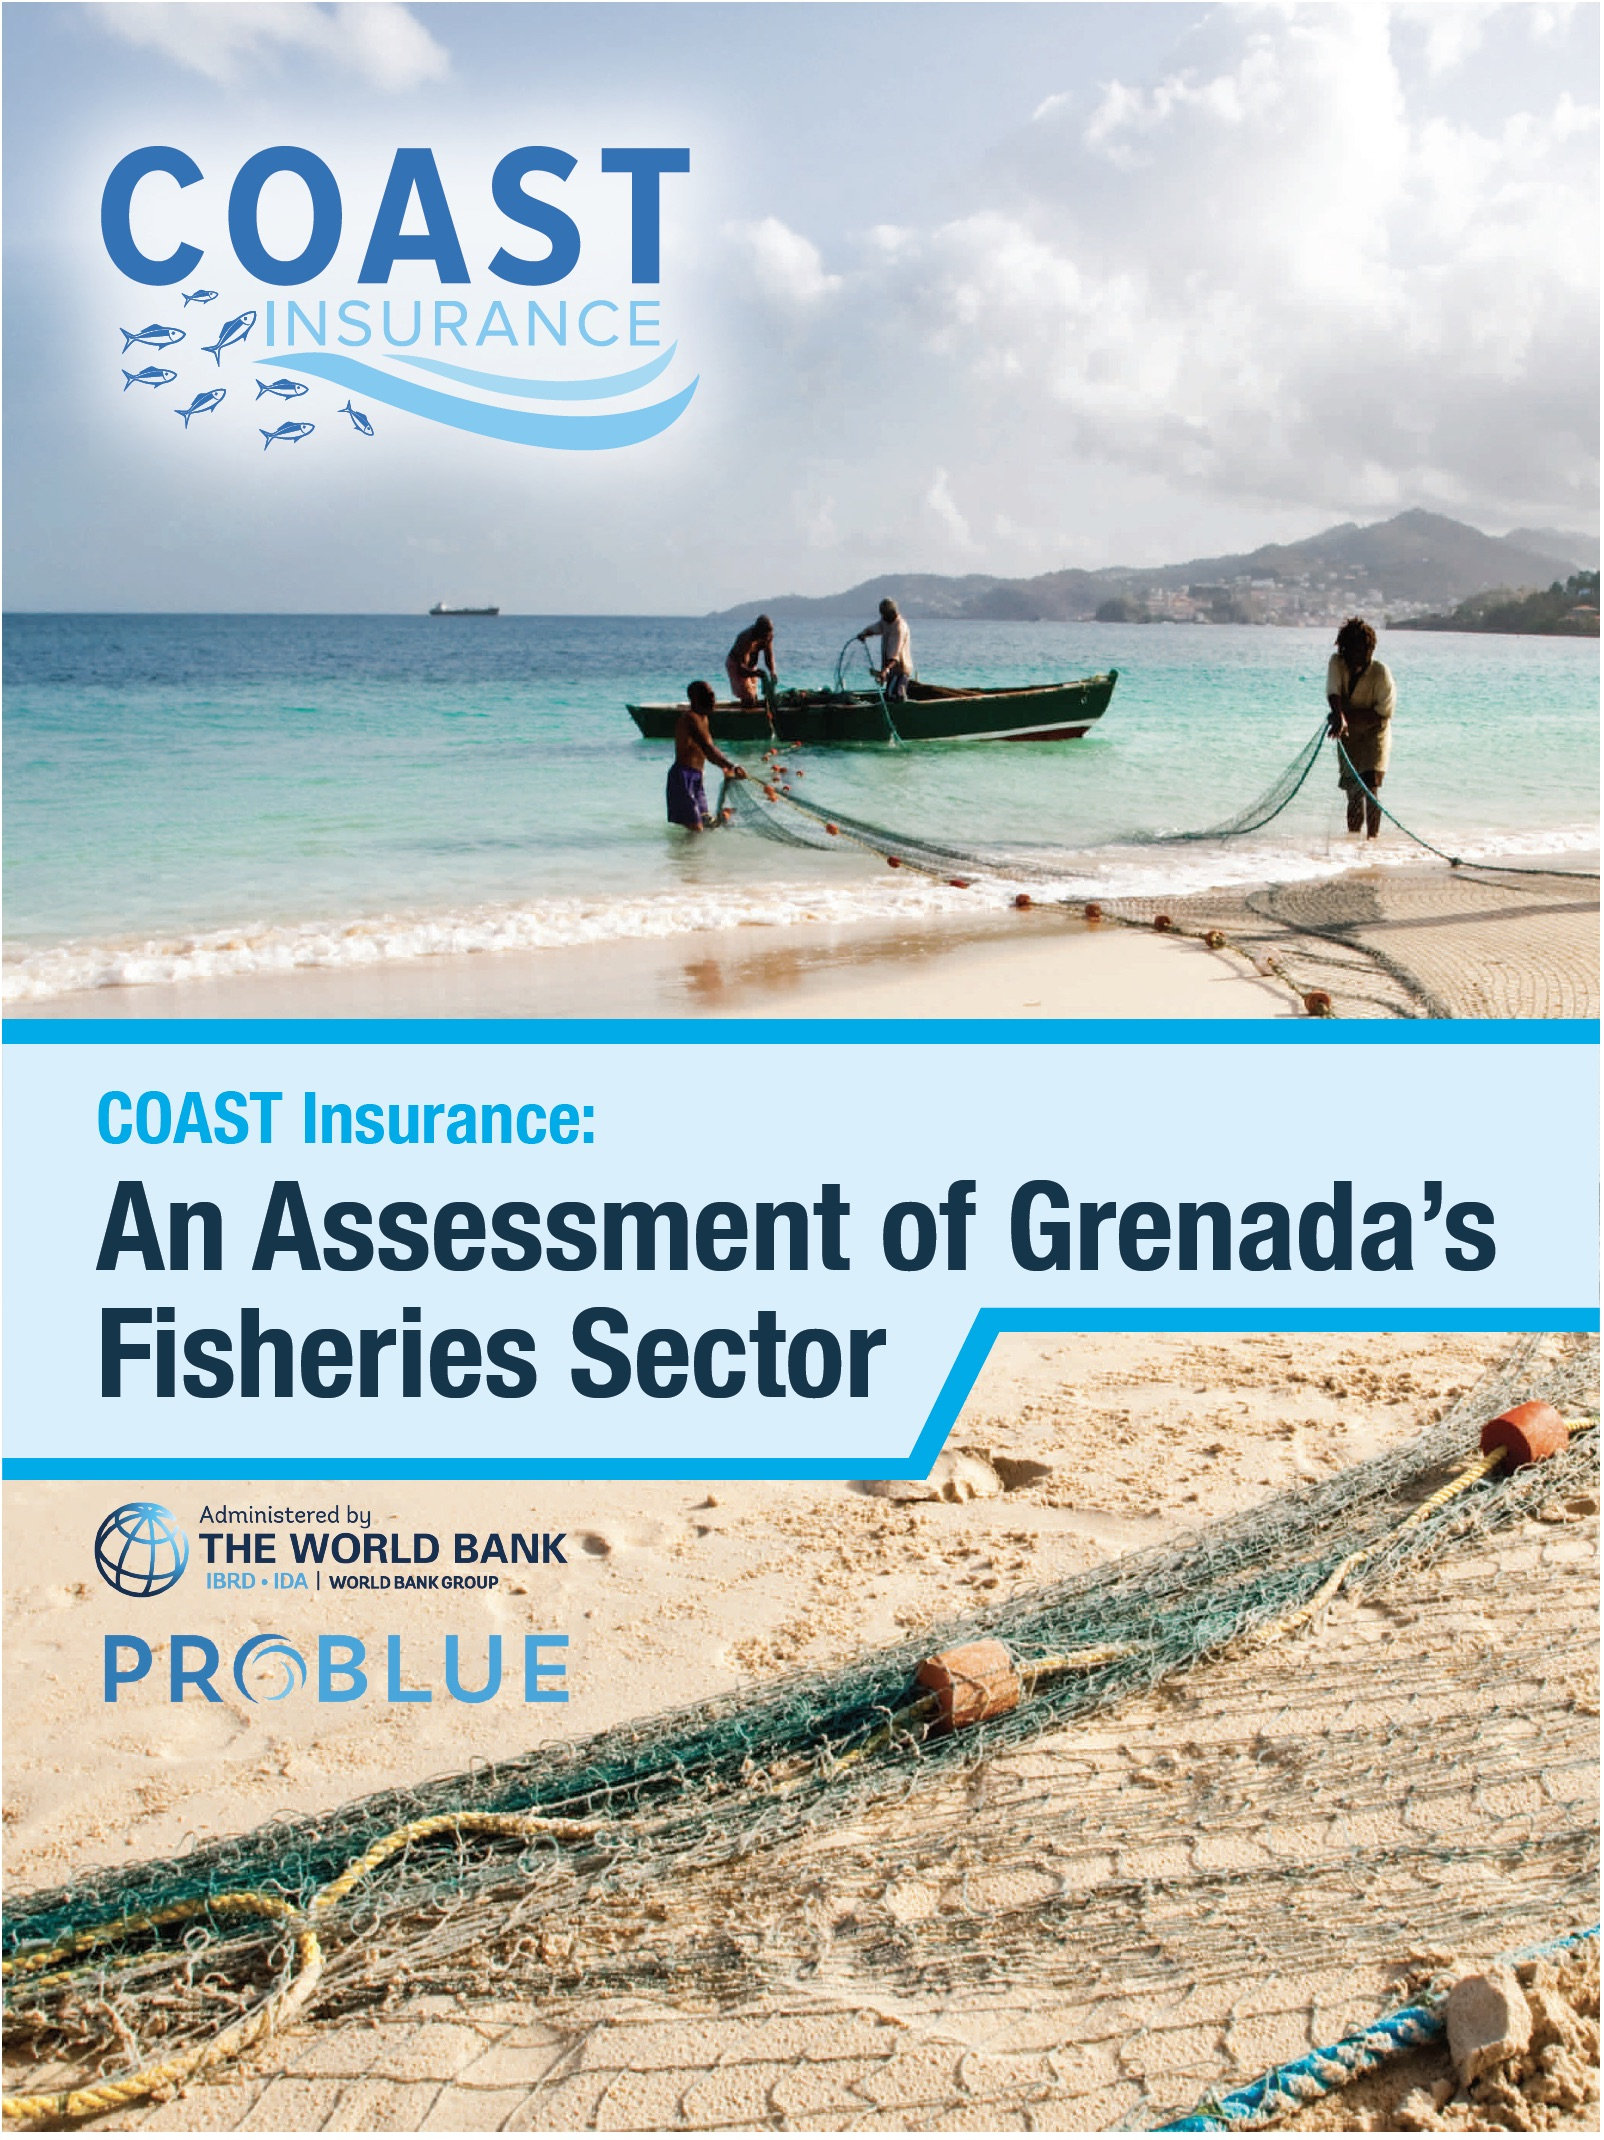 COAST Insurance: An Assessment of Grenada's Fisheries Sector